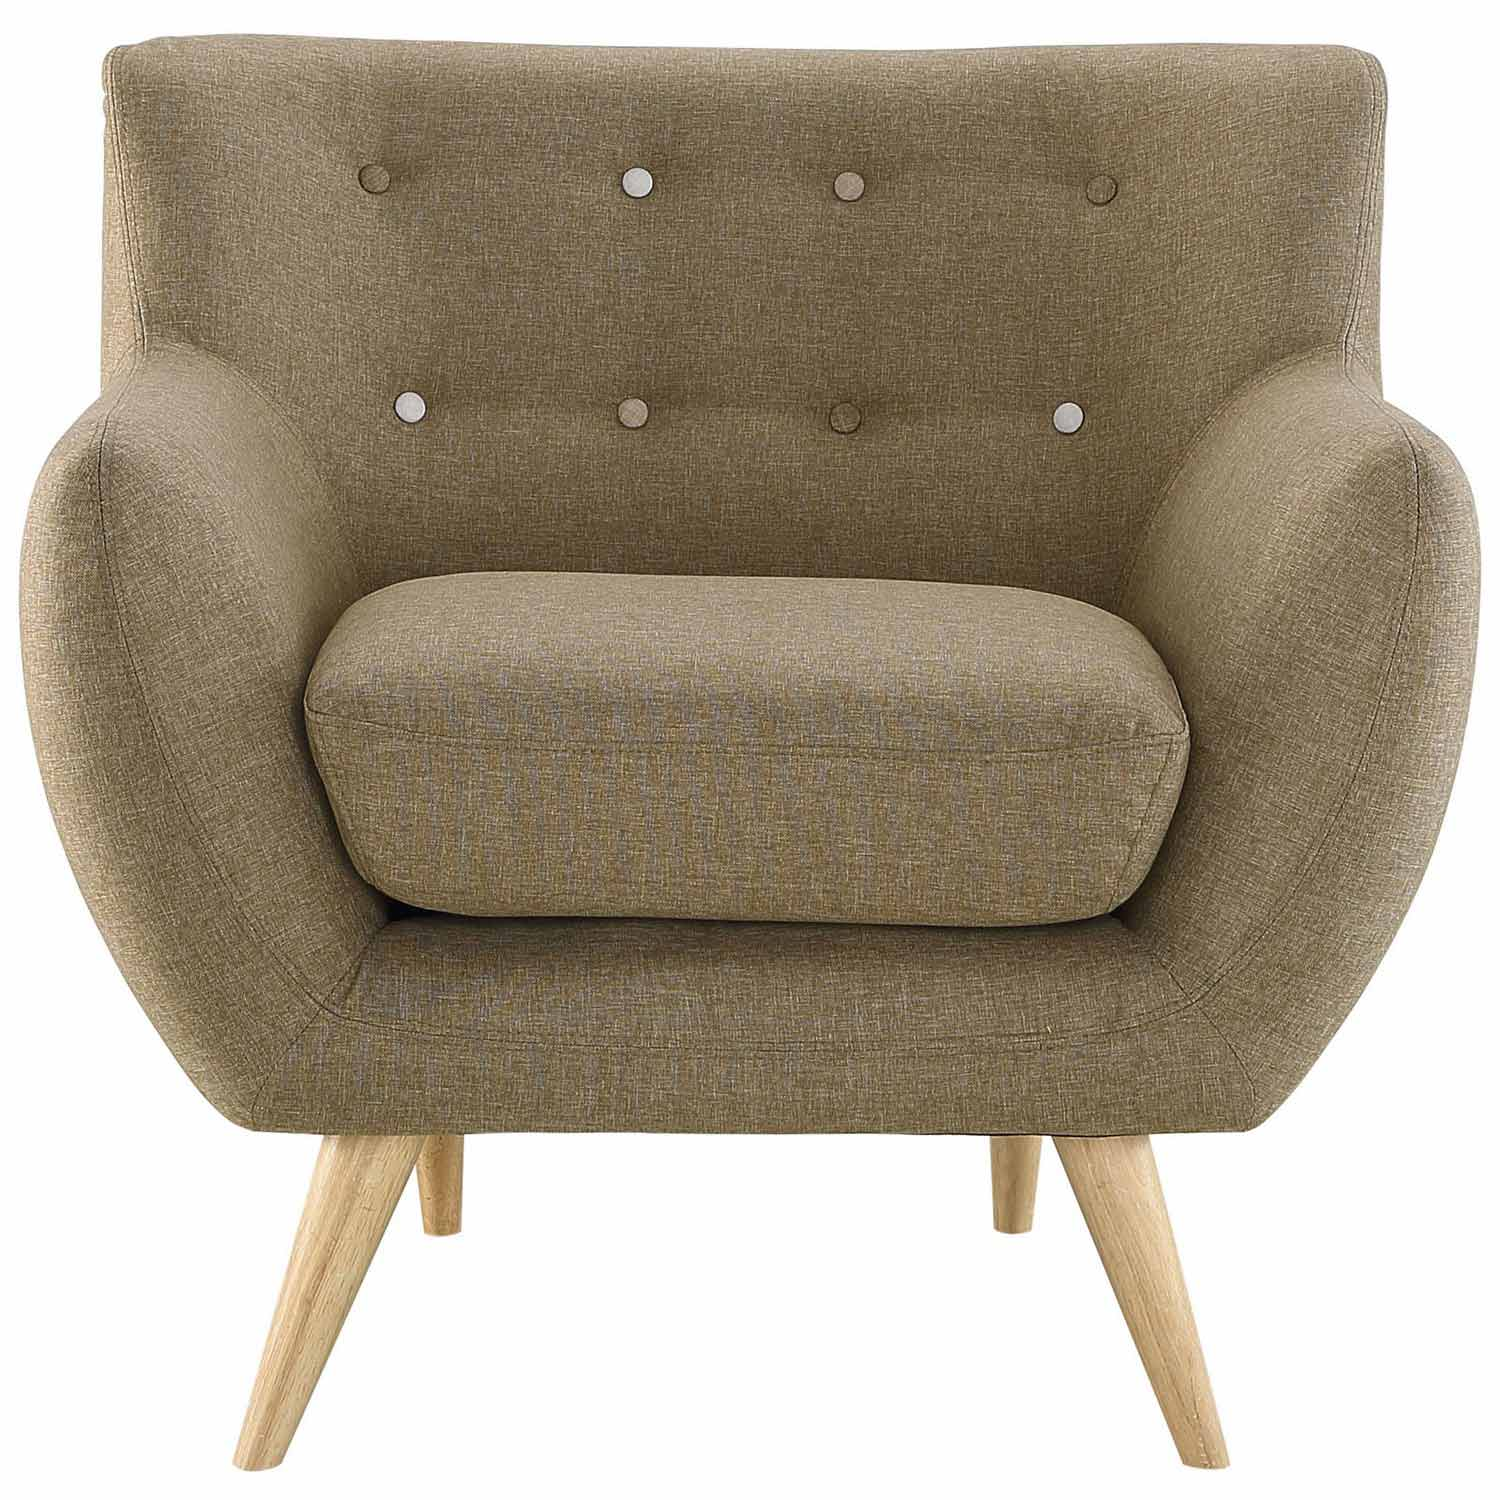 Modway Remark Armchair - Brown